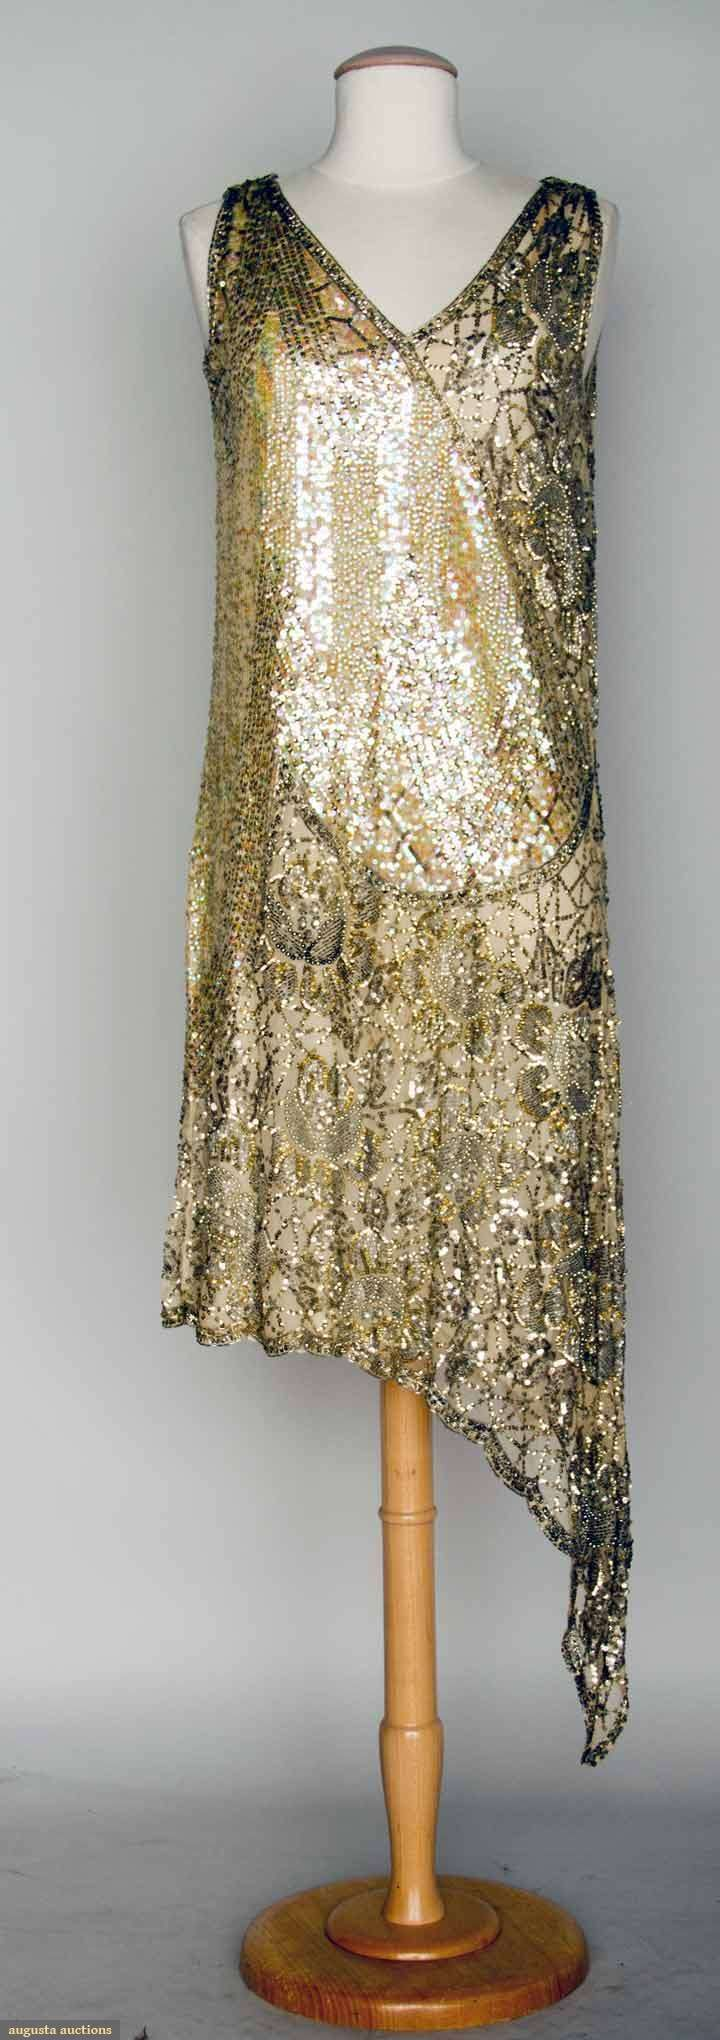 Silver Sequin Party Dress Covered In Opalescent And Metallic Silver Sequins, Rhinestones, Silver Bugle Beads, And Silver Balls, All Worked In Floral And Deco Pattern, Asymmetrical Hem On Left Side    c.1920's   -    Augusta Auctions